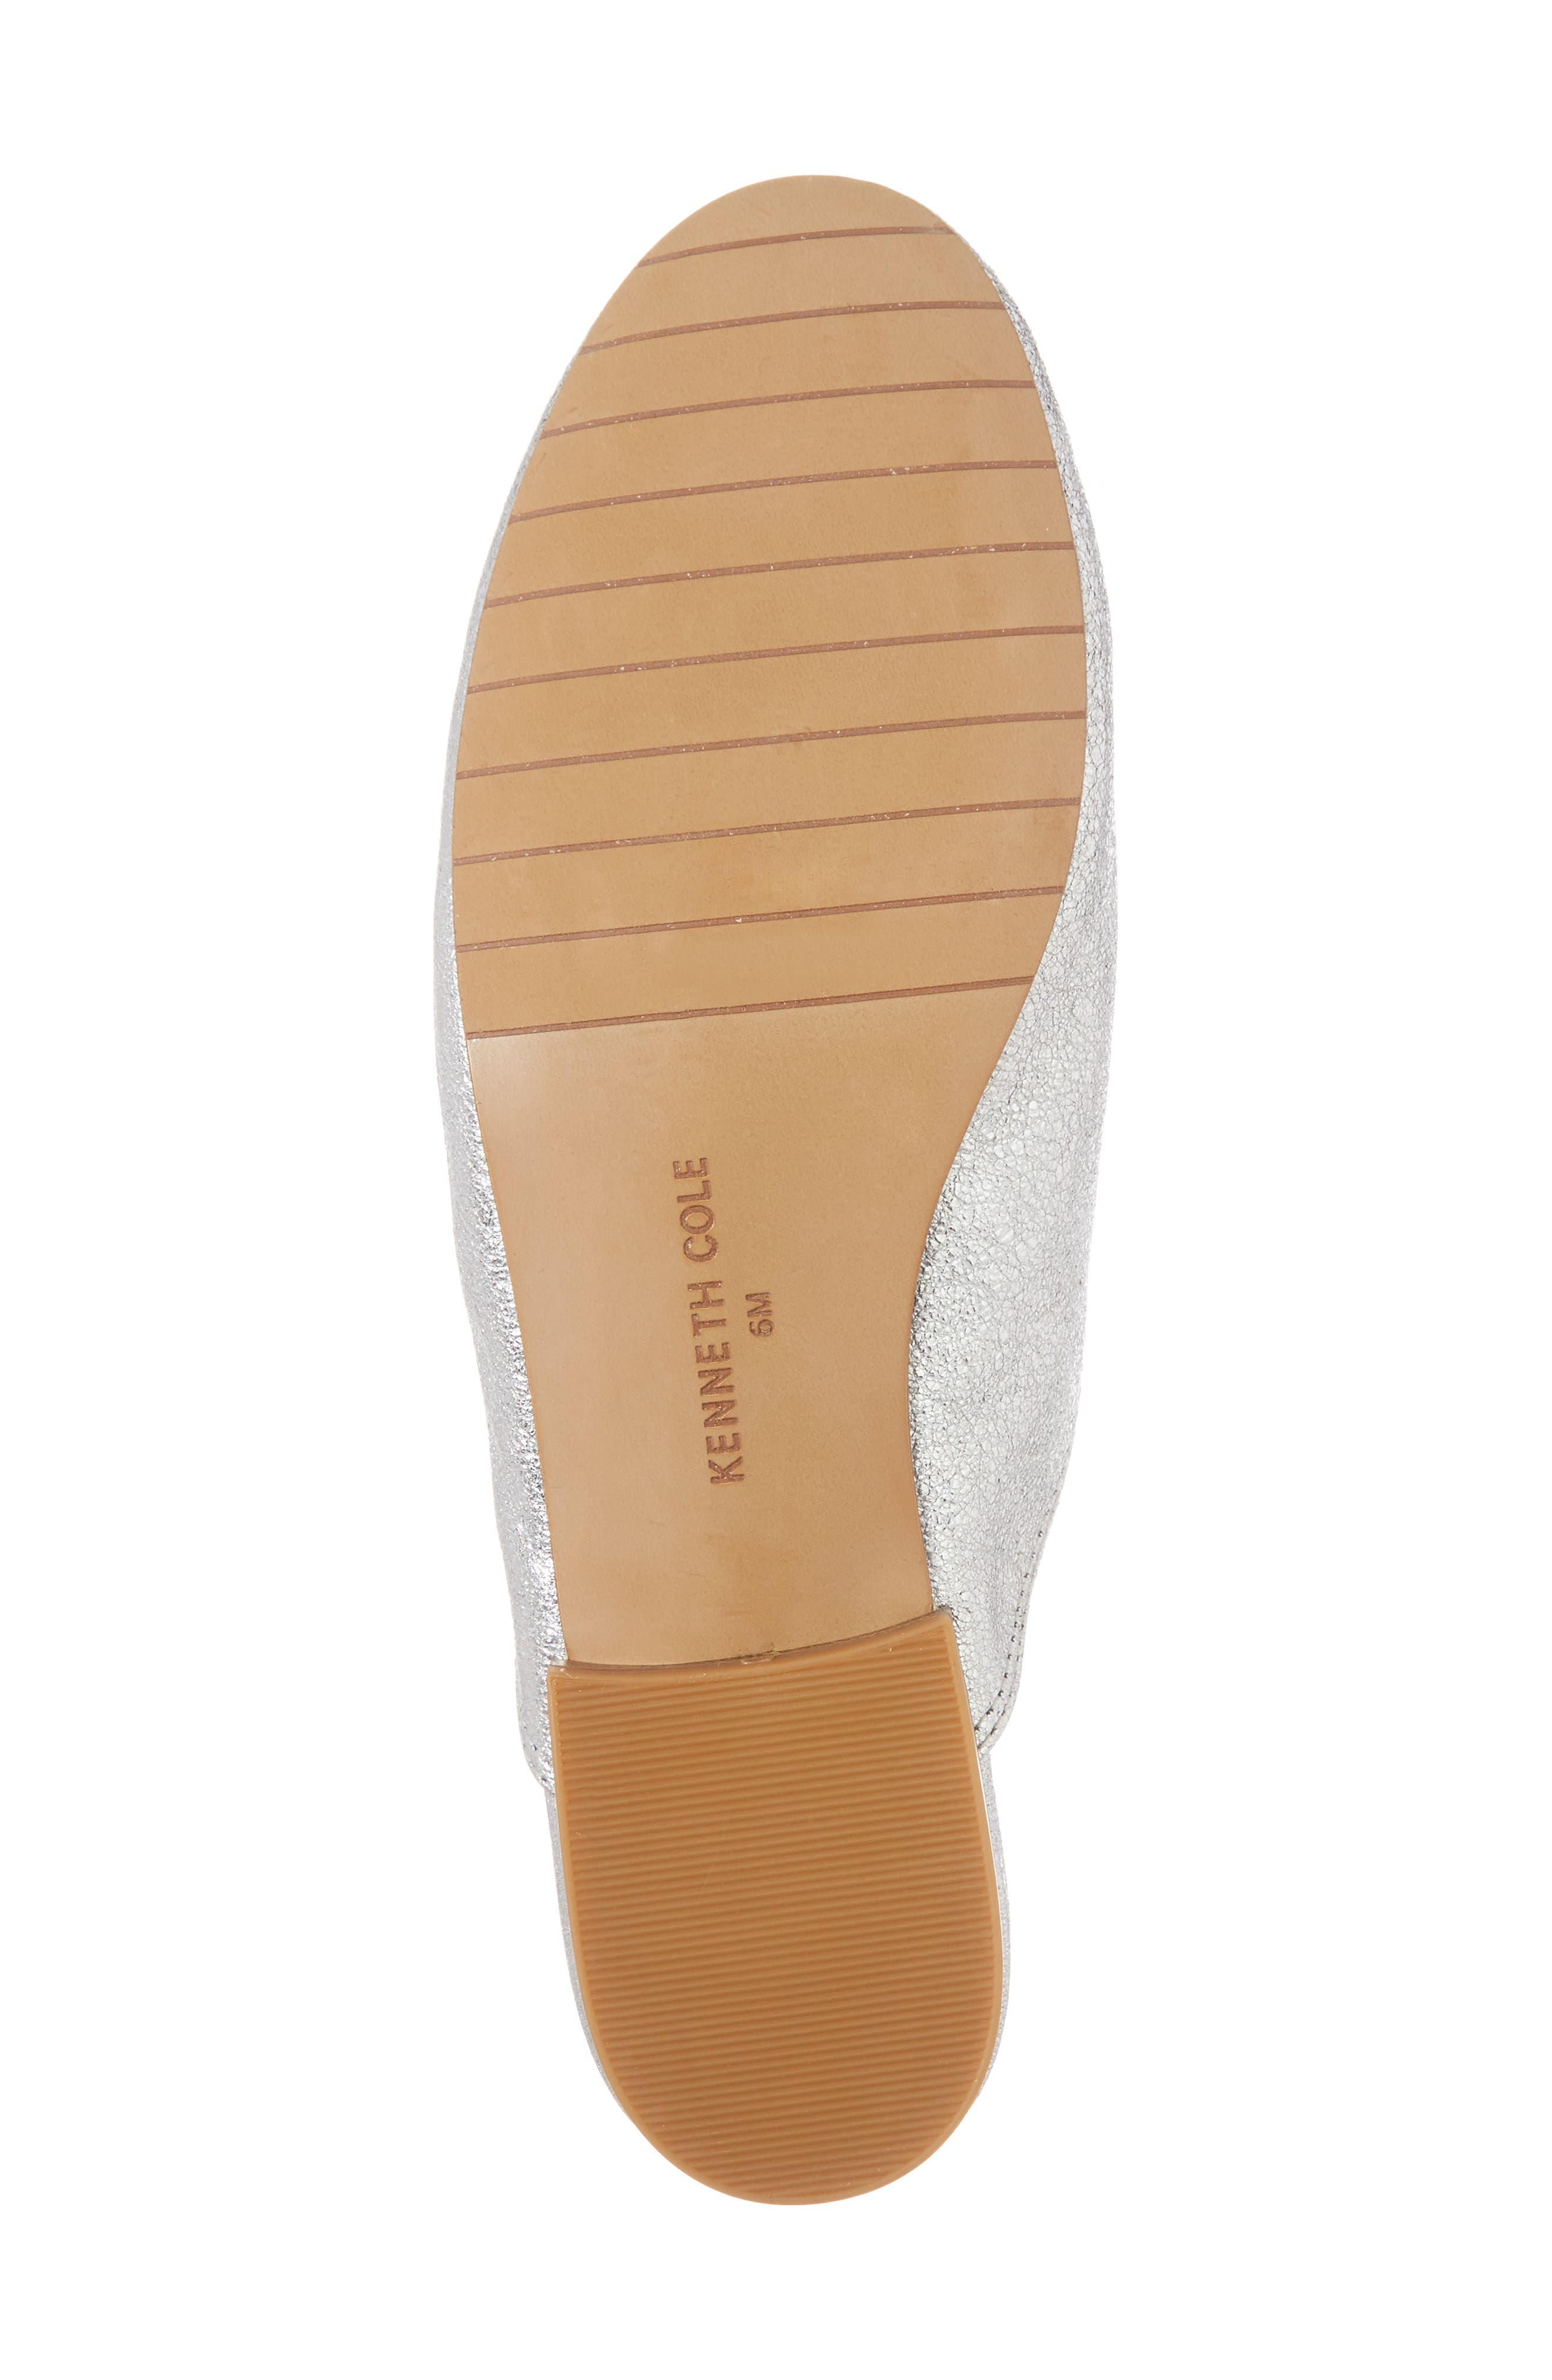 KENNETH COLE NEW YORK,                             Wallice Appliqué Mule,                             Alternate thumbnail 6, color,                             040